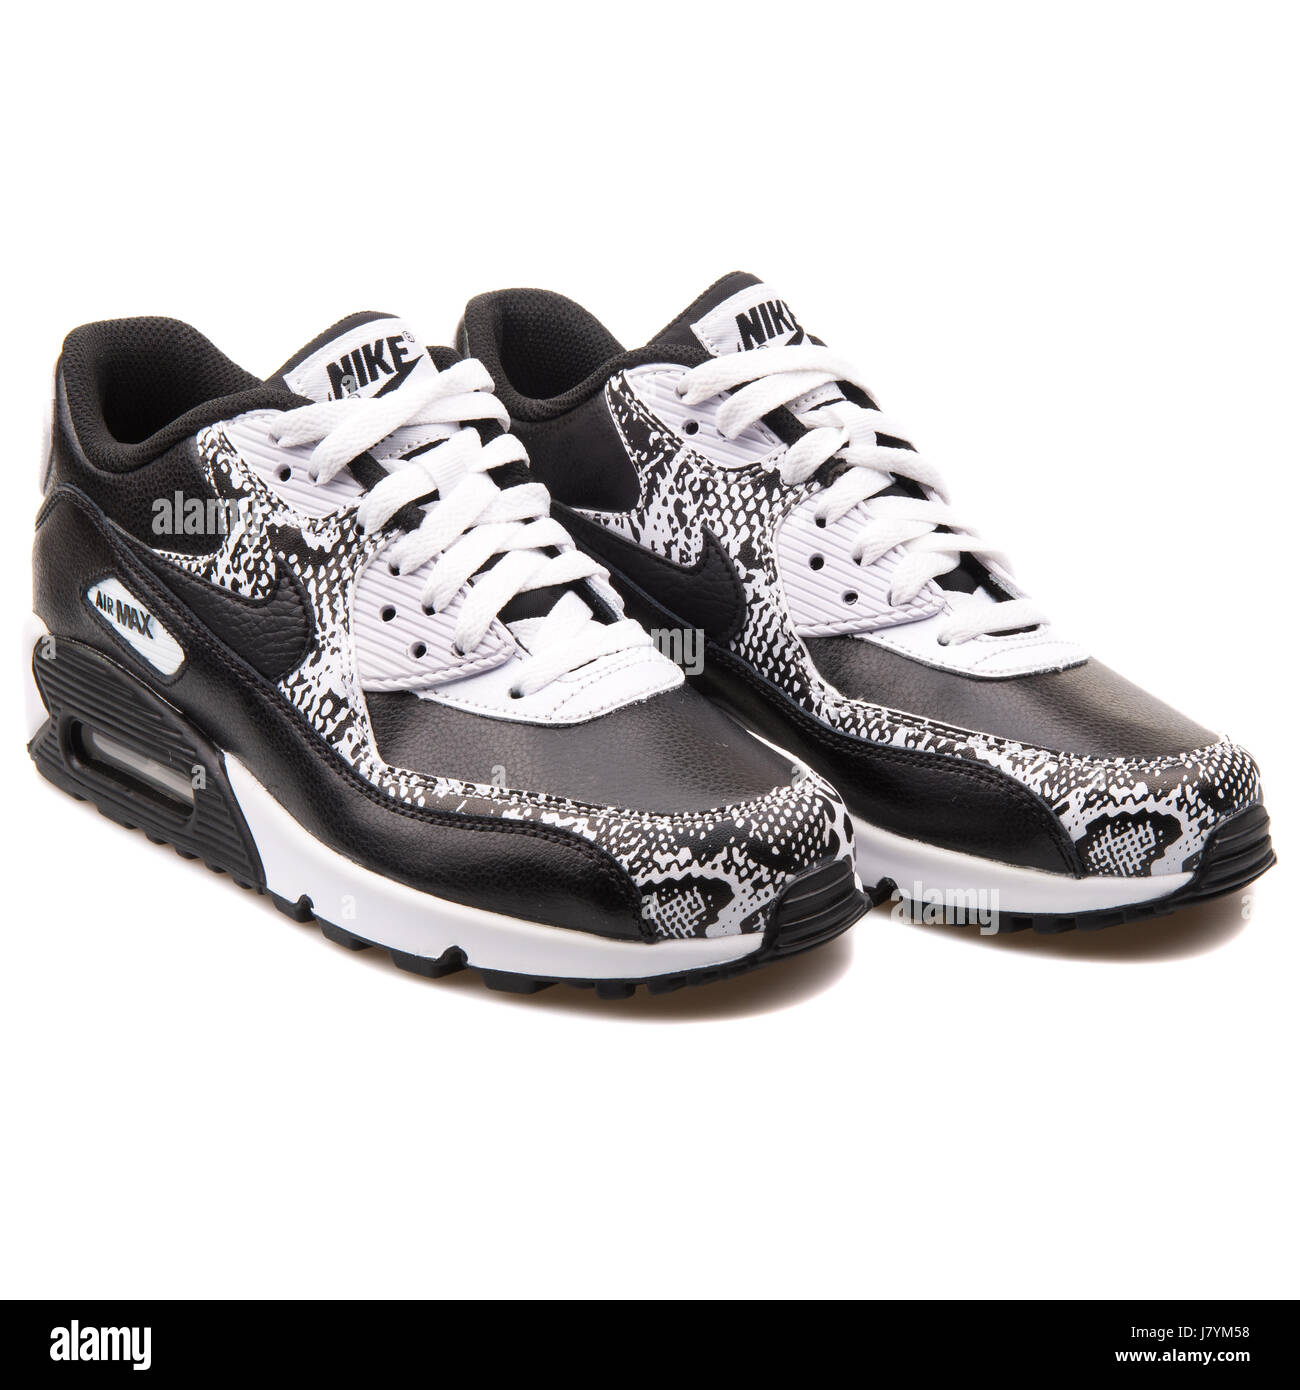 Nike Air Max 90 Premium LTR (GS) Youth Black and White